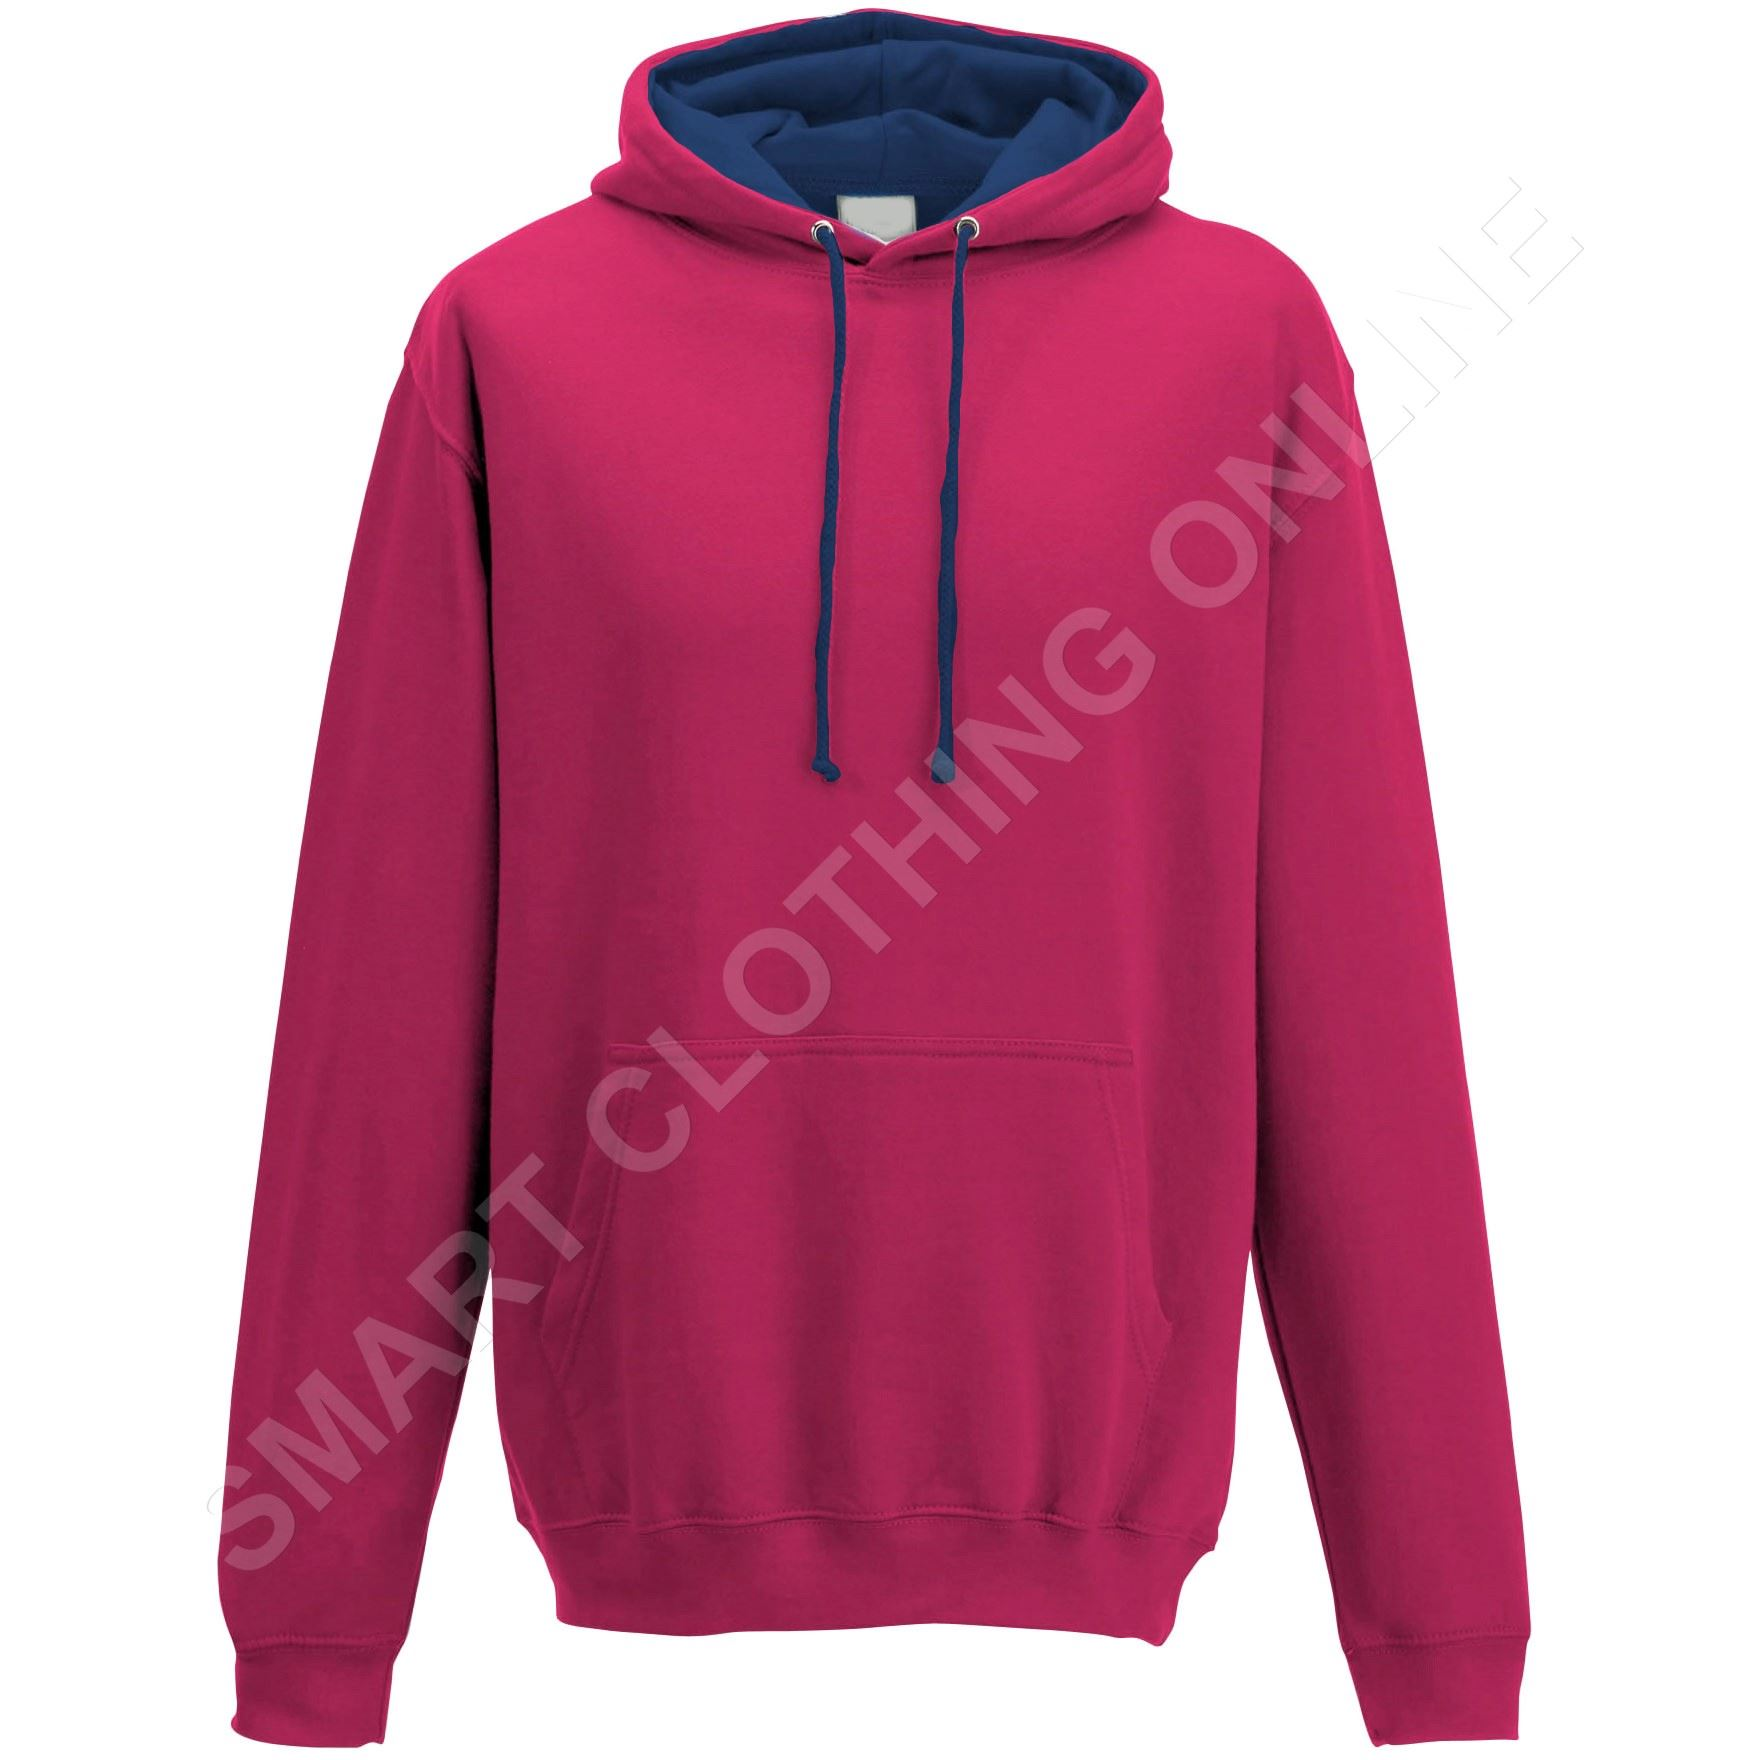 Shop for Xxl hoodies & sweatshirts from Zazzle. Choose a design from our huge selection of images, artwork, & photos.